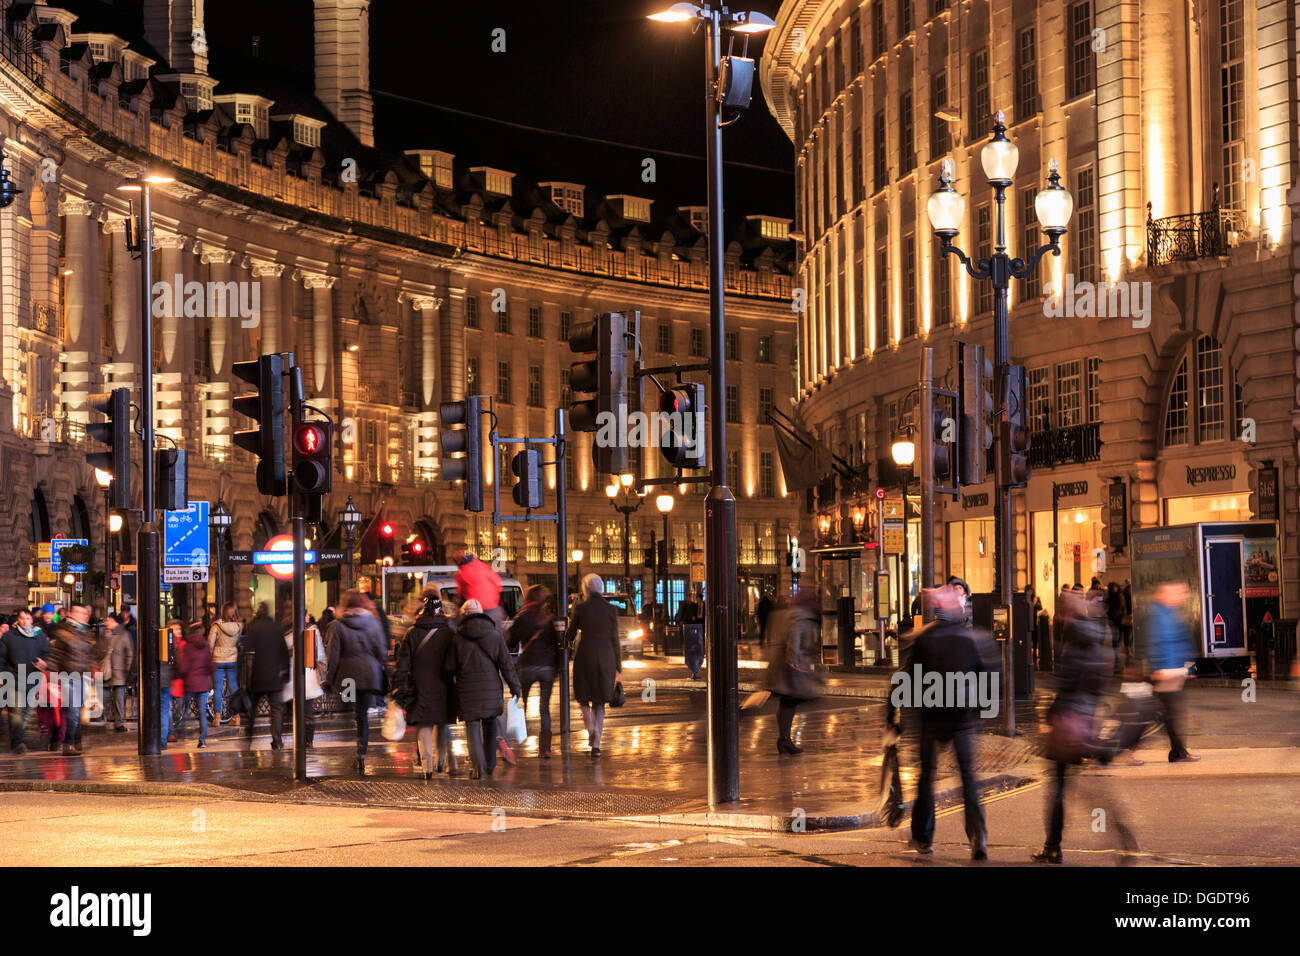 Shoppers and tourists Regent Street at night London - Stock Image